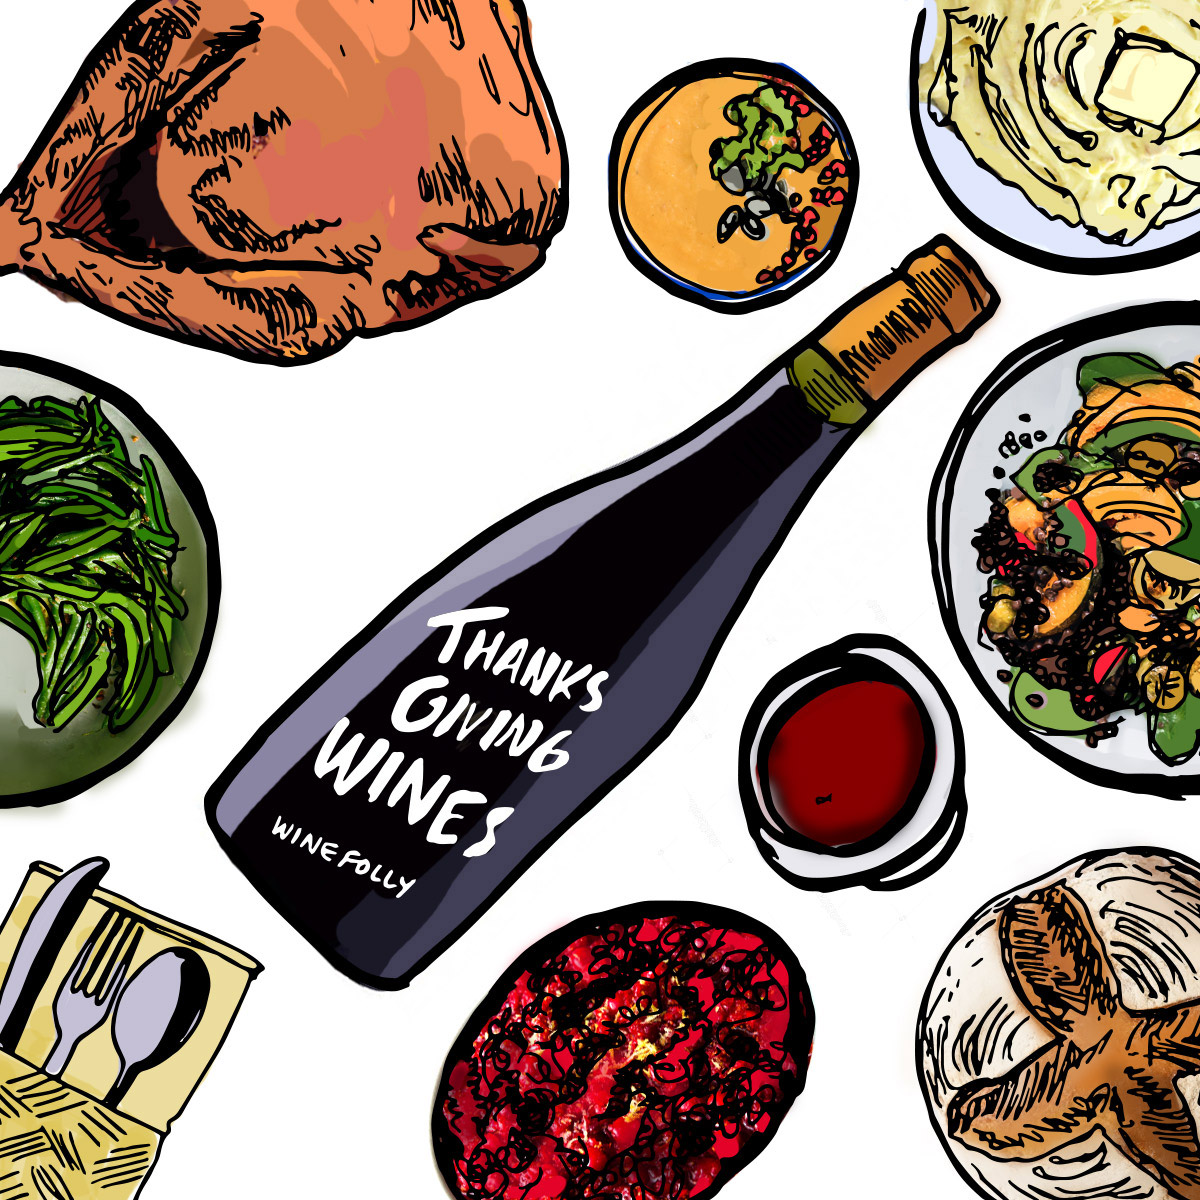 Thanksgiving Wine Picks for 2018 by Wine Folly